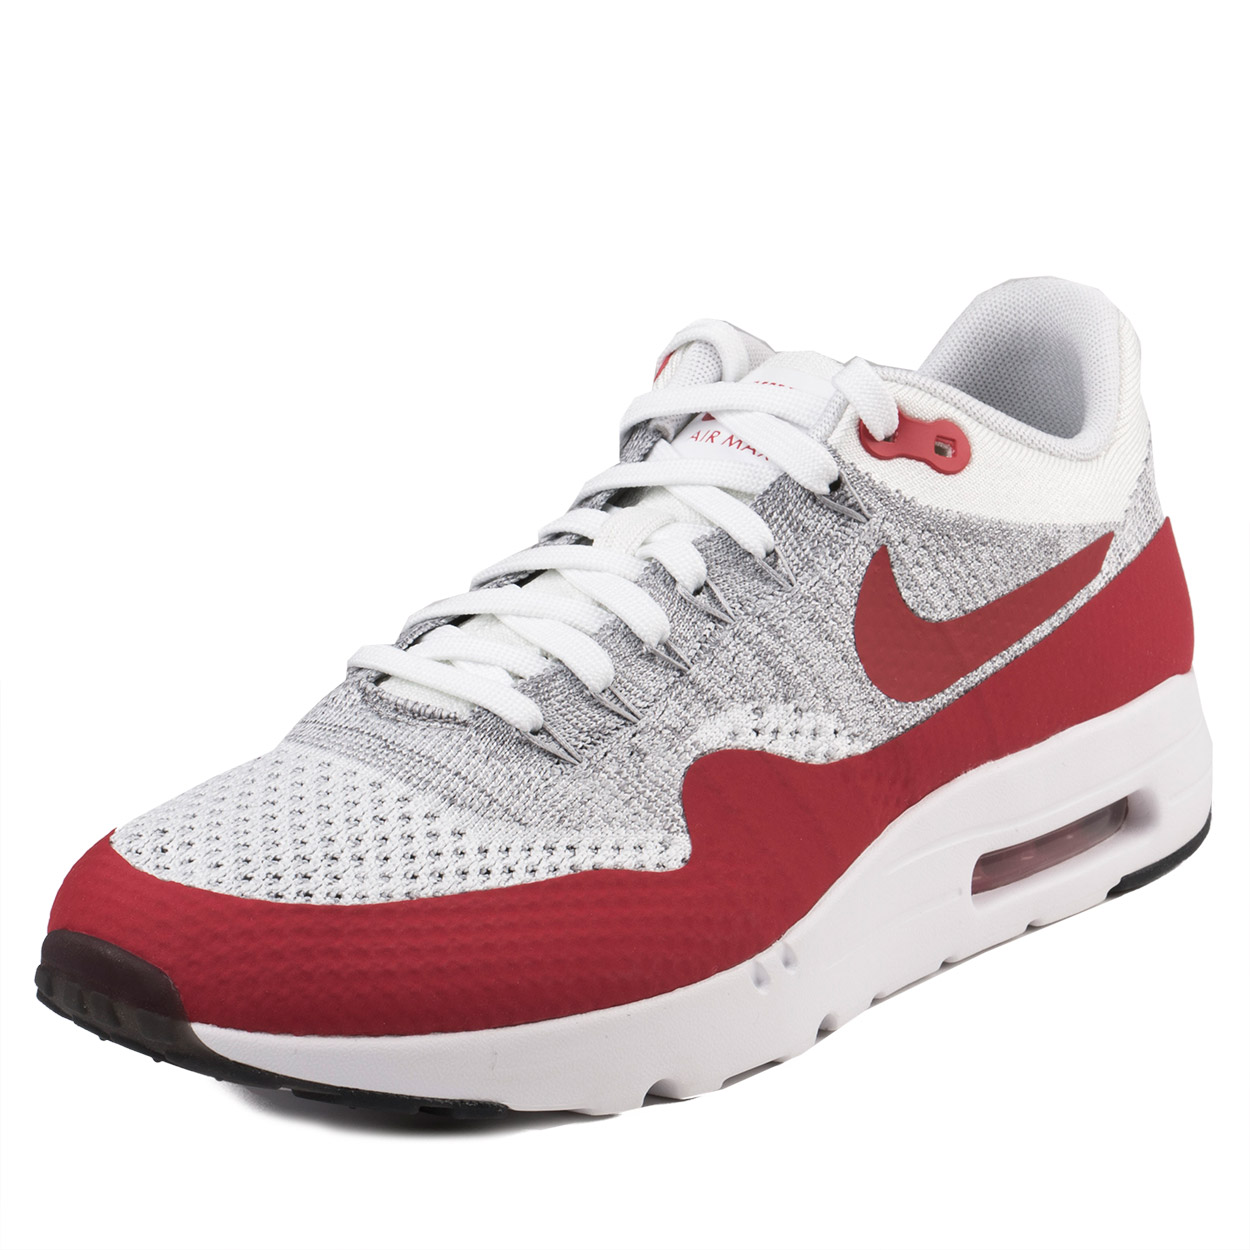 Nike Mens Air Max 1 Ultra Flyknit White/University Red 843384-101